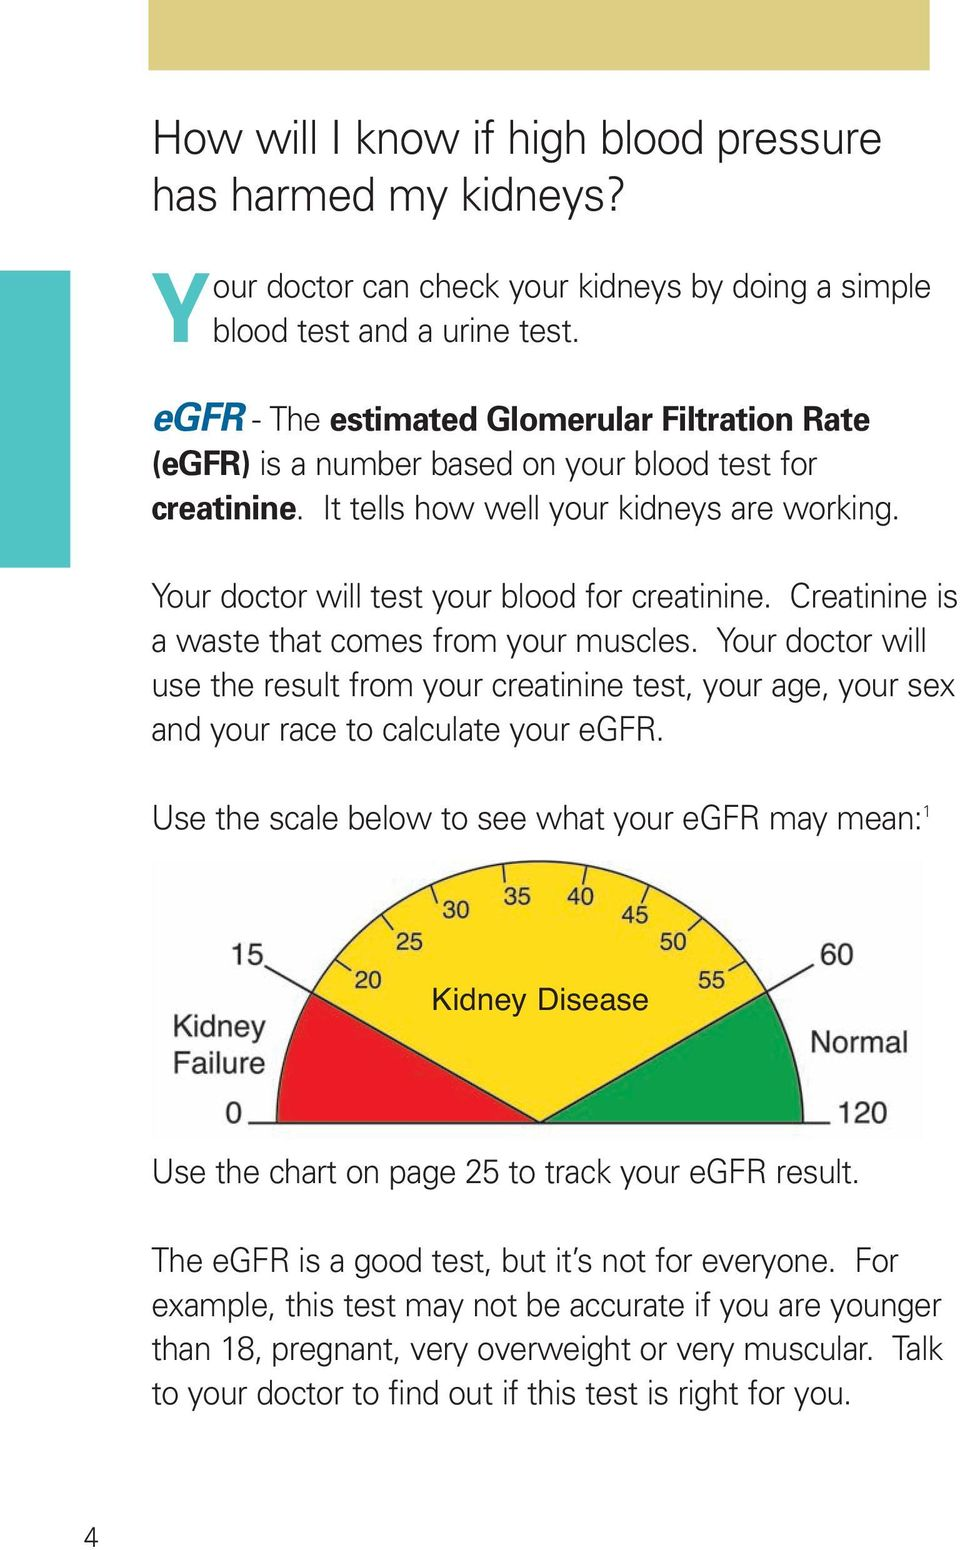 Creatinine is a waste that comes from your muscles. Your doctor will use the result from your creatinine test, your age, your sex and your race to calculate your egfr.